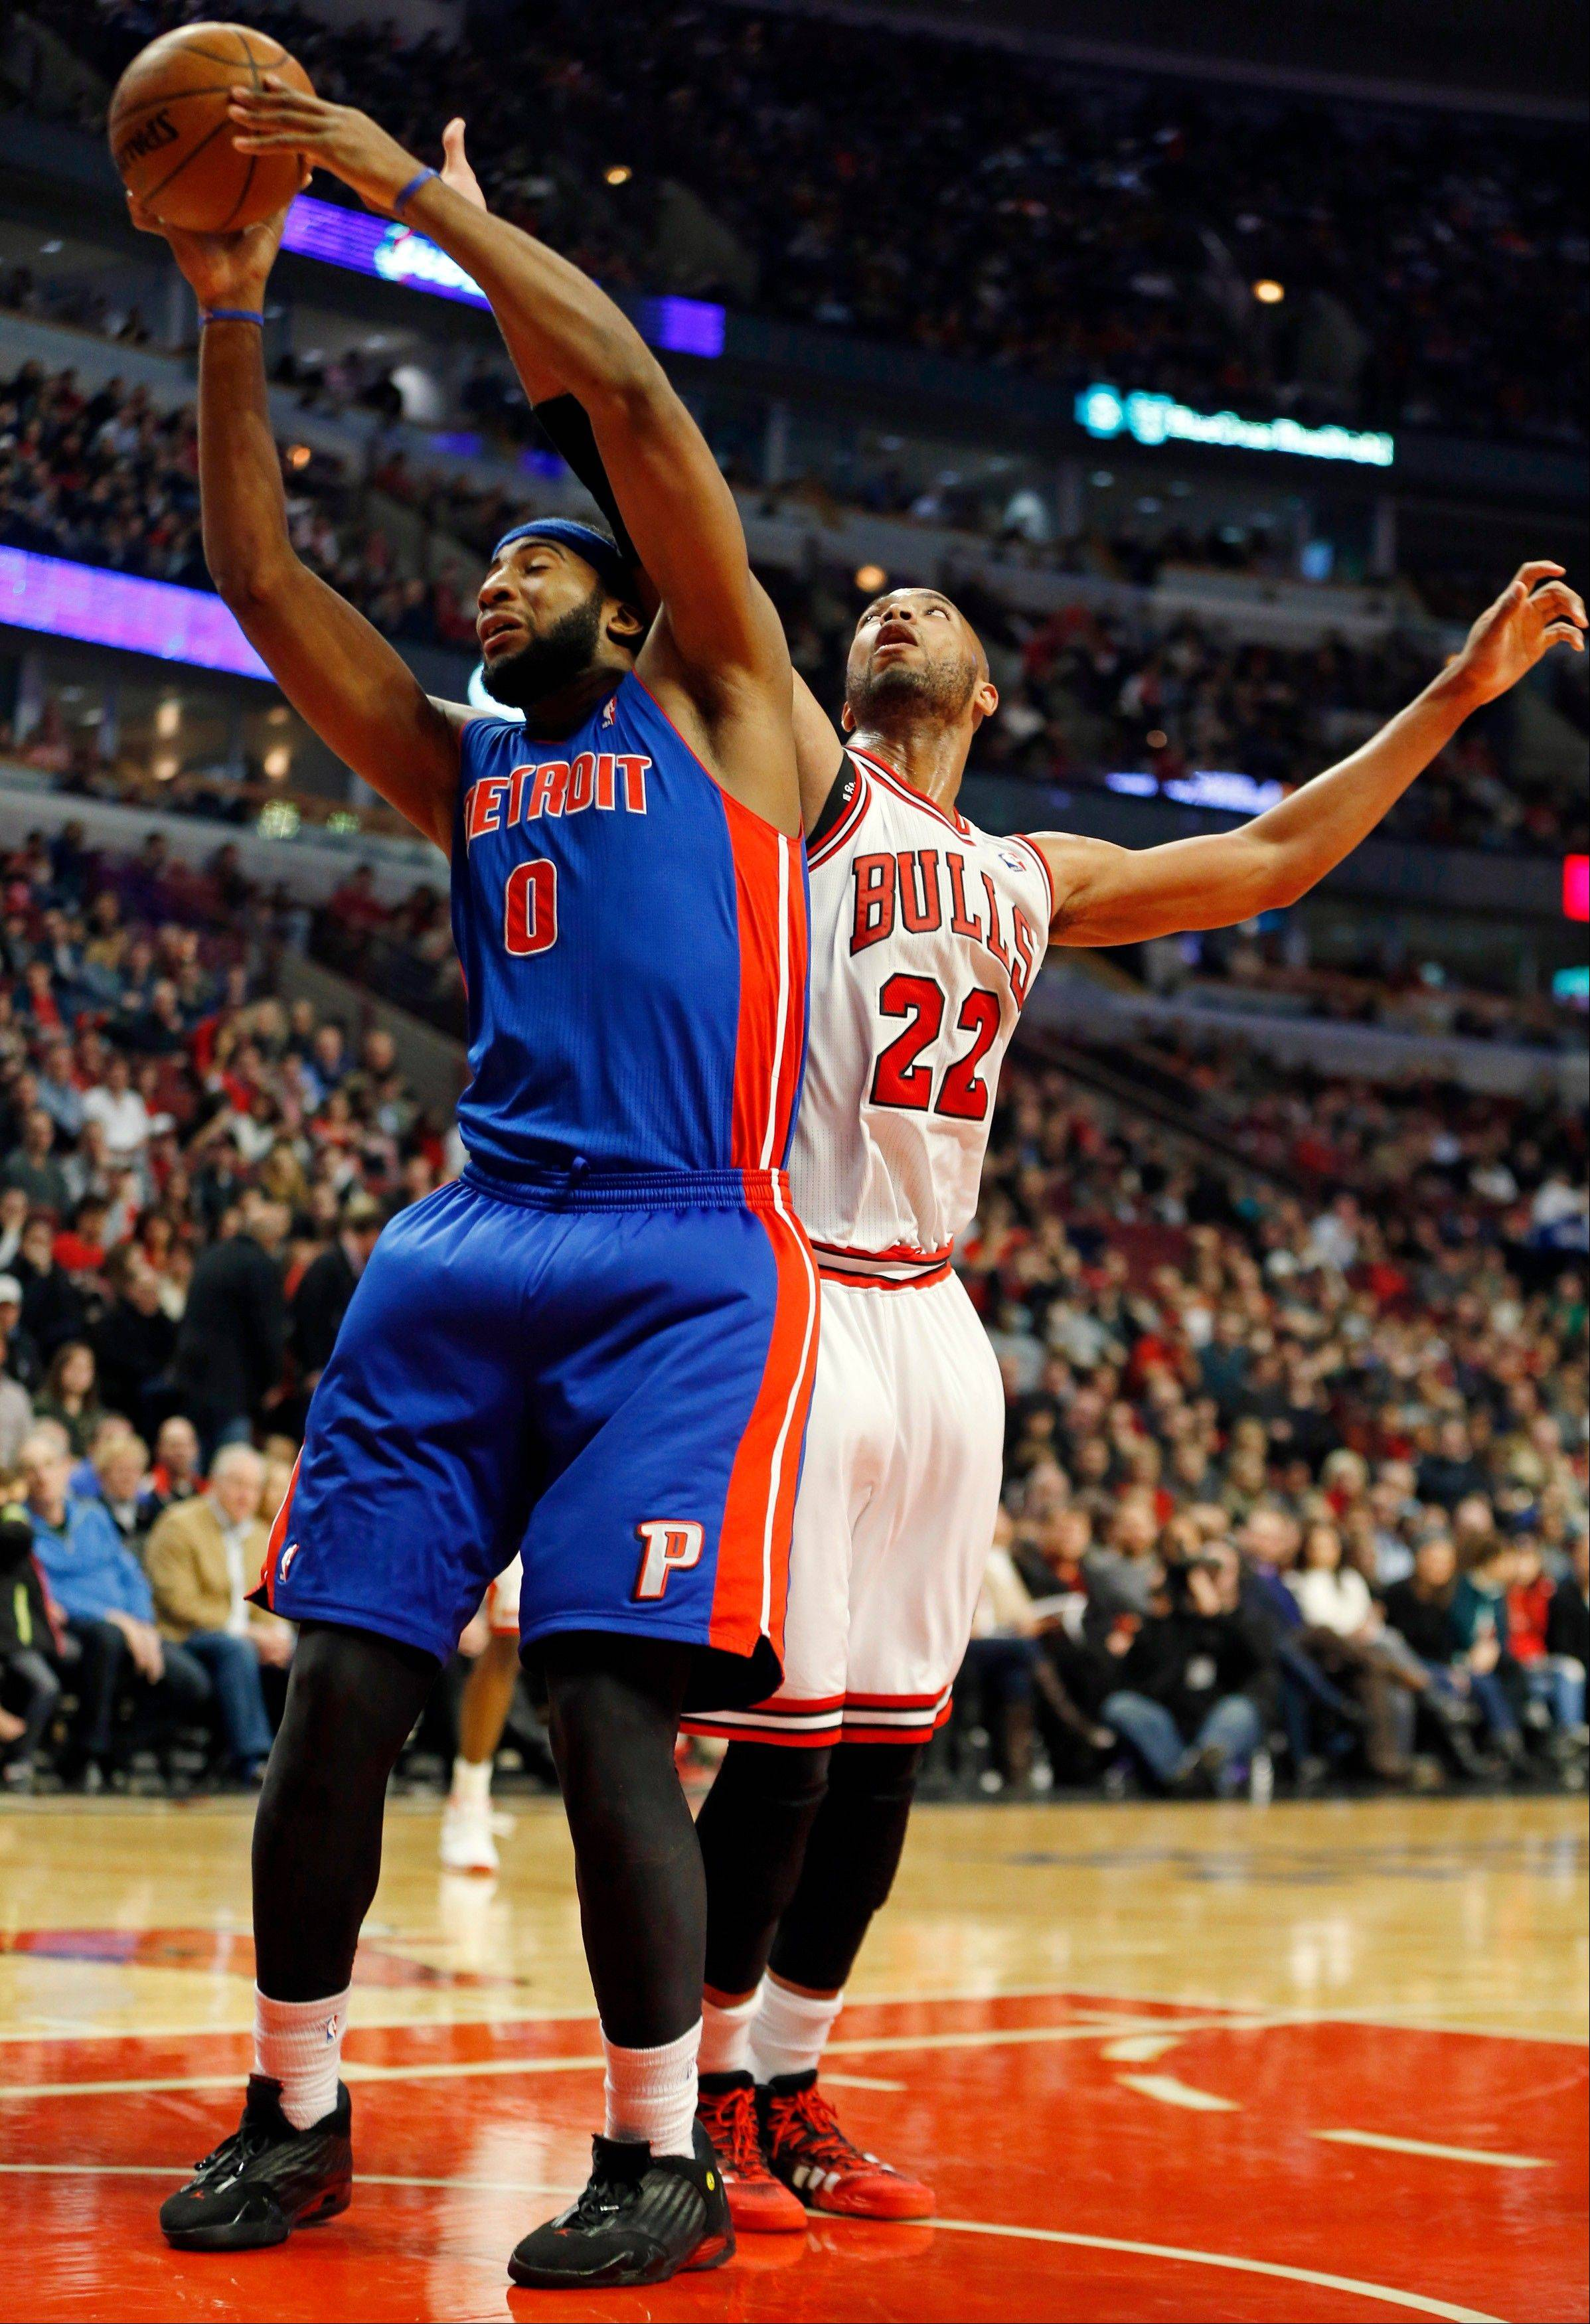 The Bulls� Taj Gibson puts some defensive pressure on Andre Drummond of the Pistons on Saturday at the United Center.